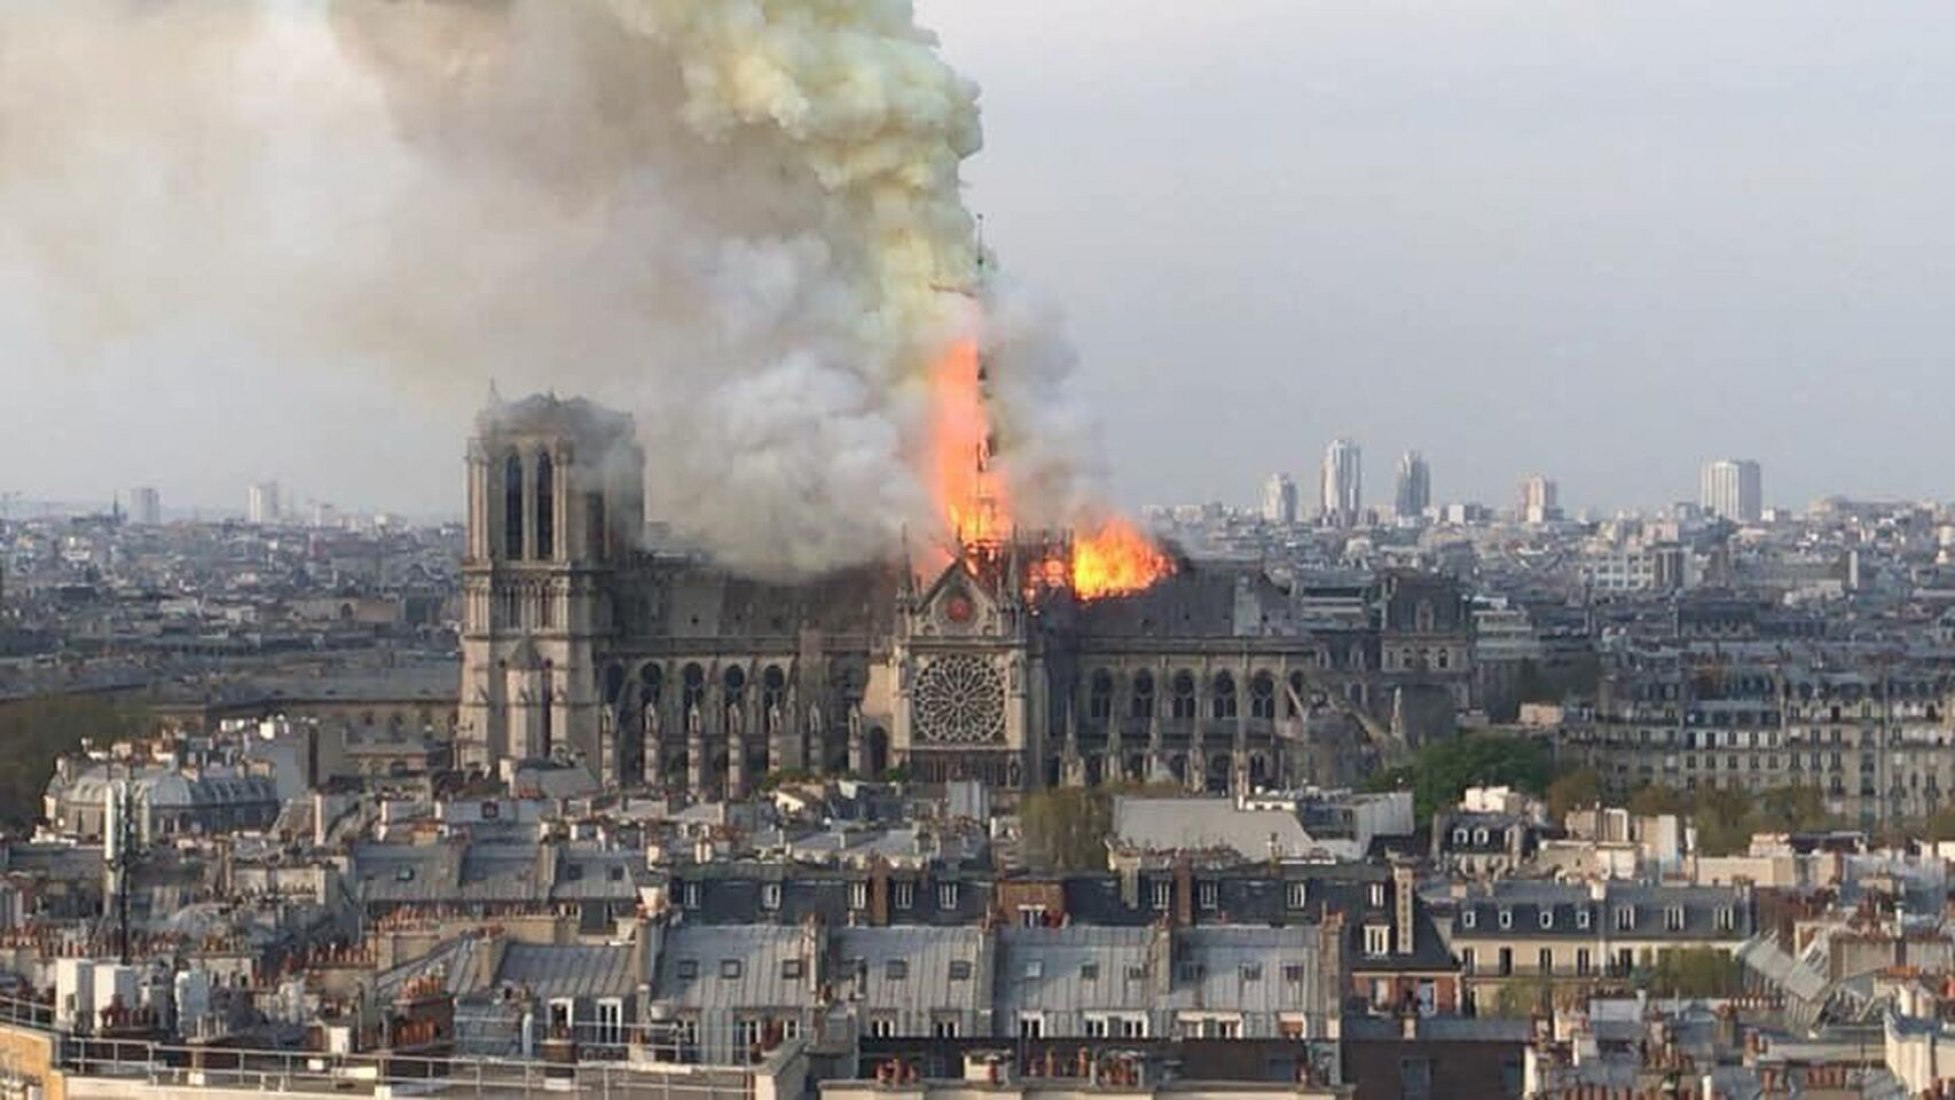 The Dantesque images of the Cathedral of Notre Dame de Paris, an incalculable loss for Europe.